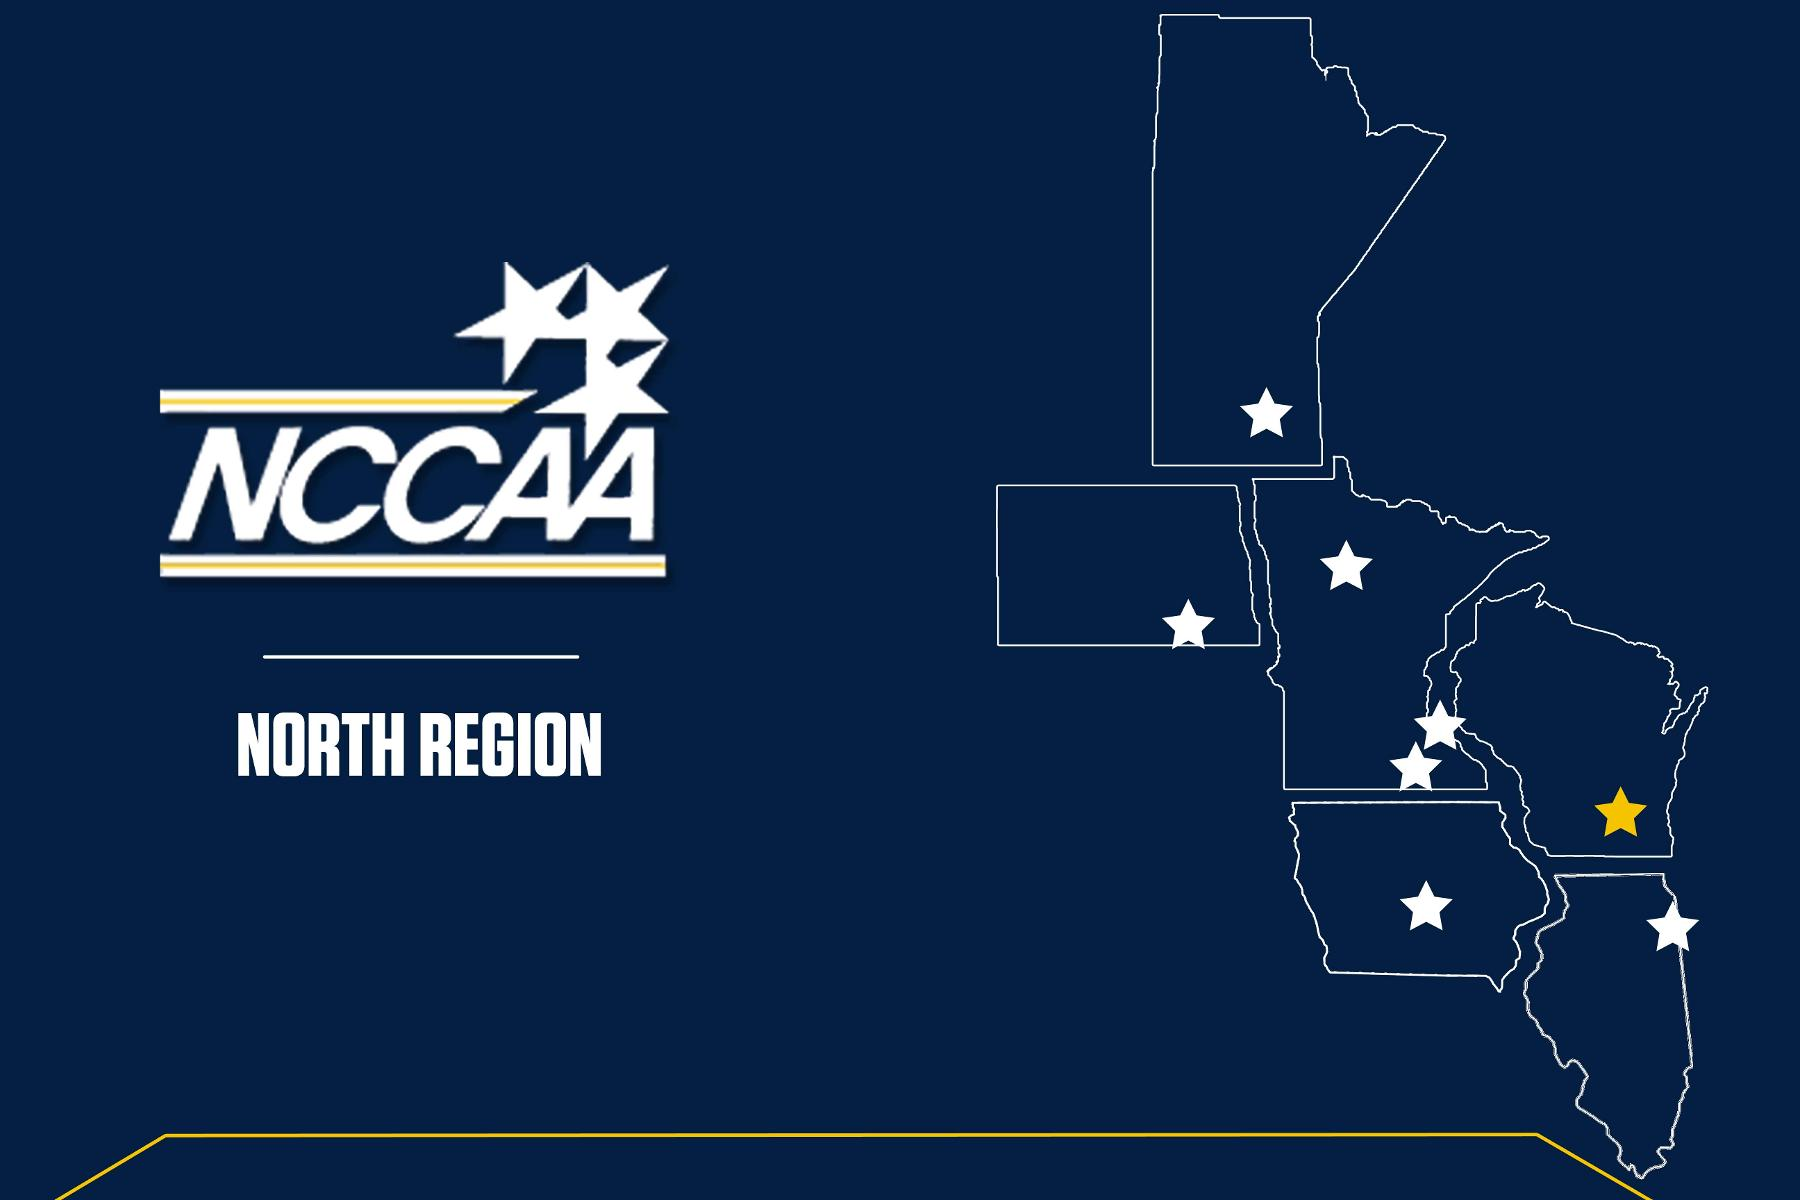 The NCCAA Announces New DII Regional Alignment